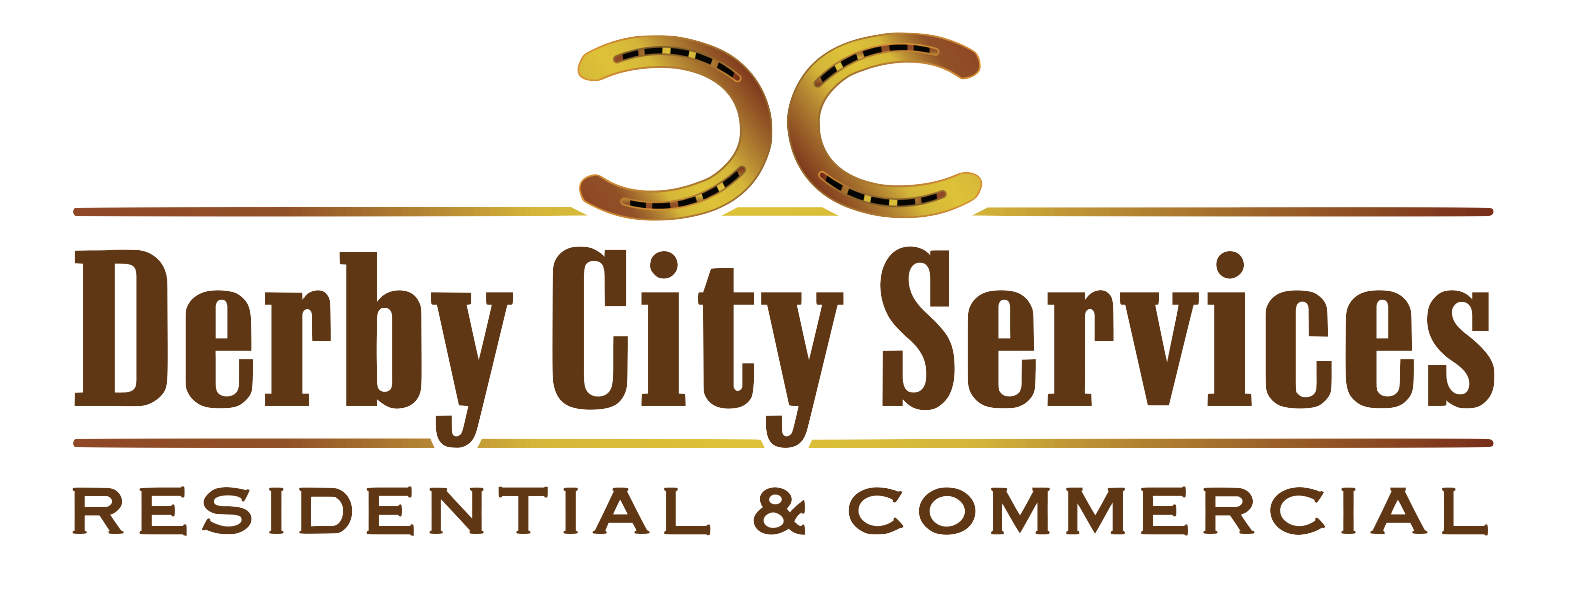 residential commercial services company